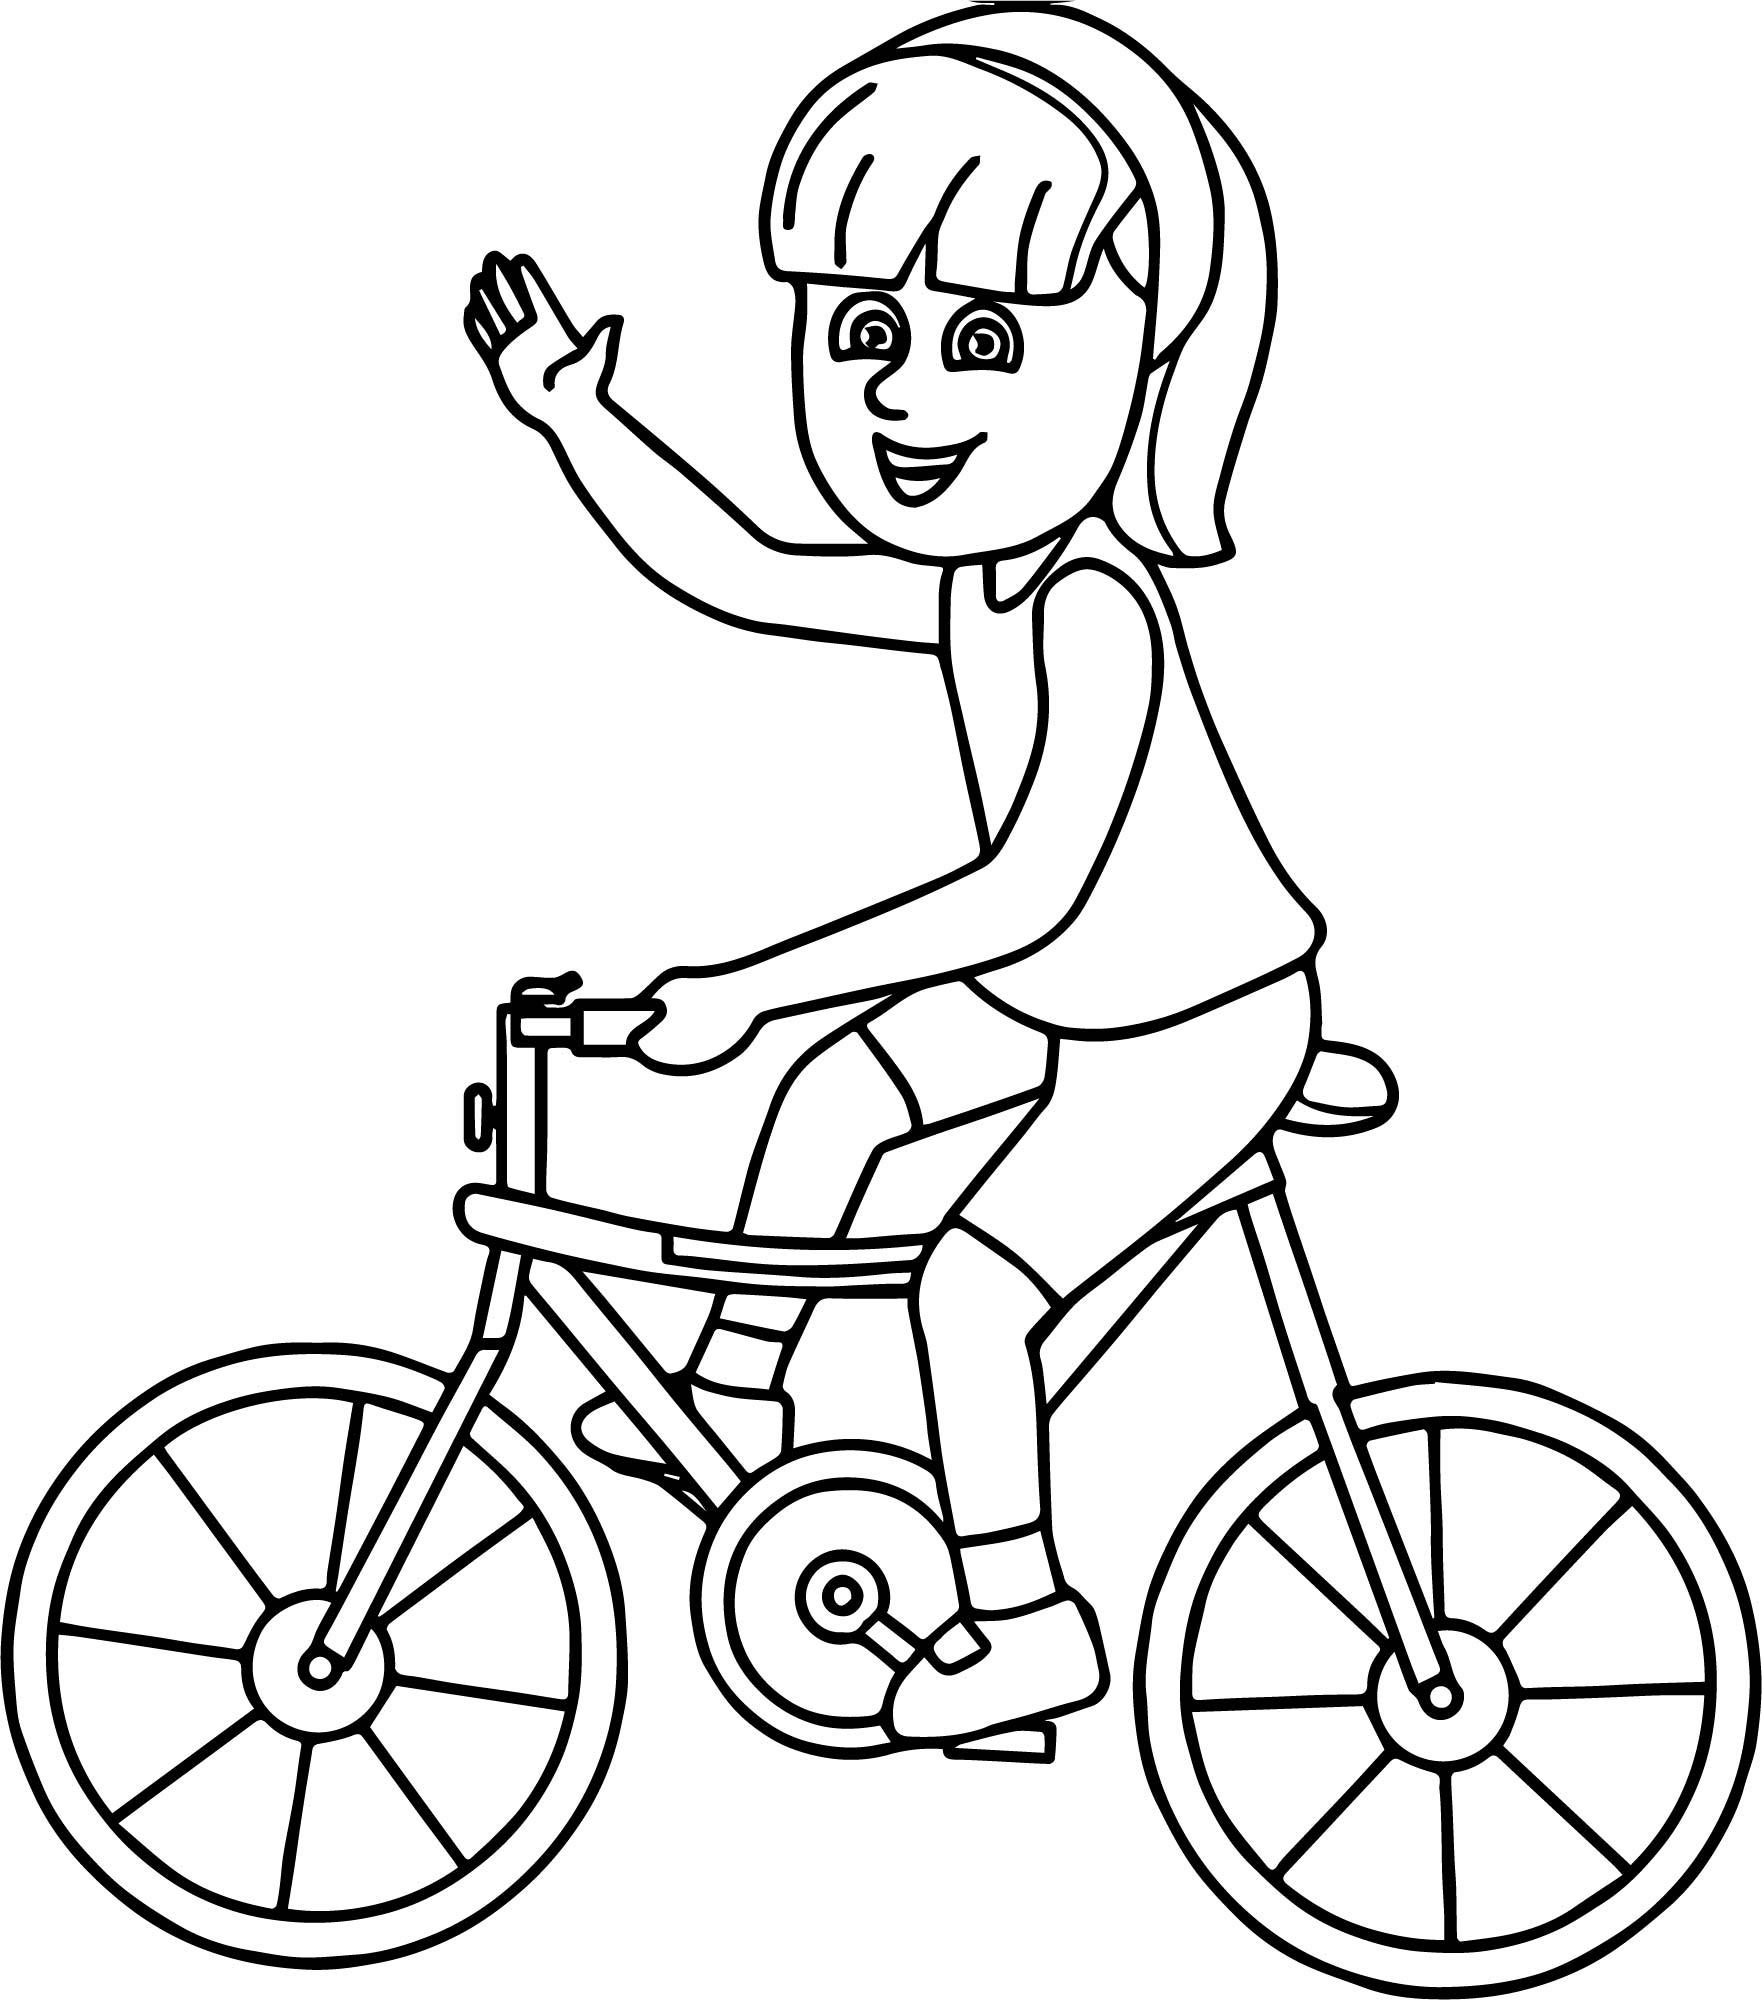 Bike Coloring Pages Pleasing Riding Girl On Bicycle Coloring Page  Wecoloringpage Decorating Inspiration